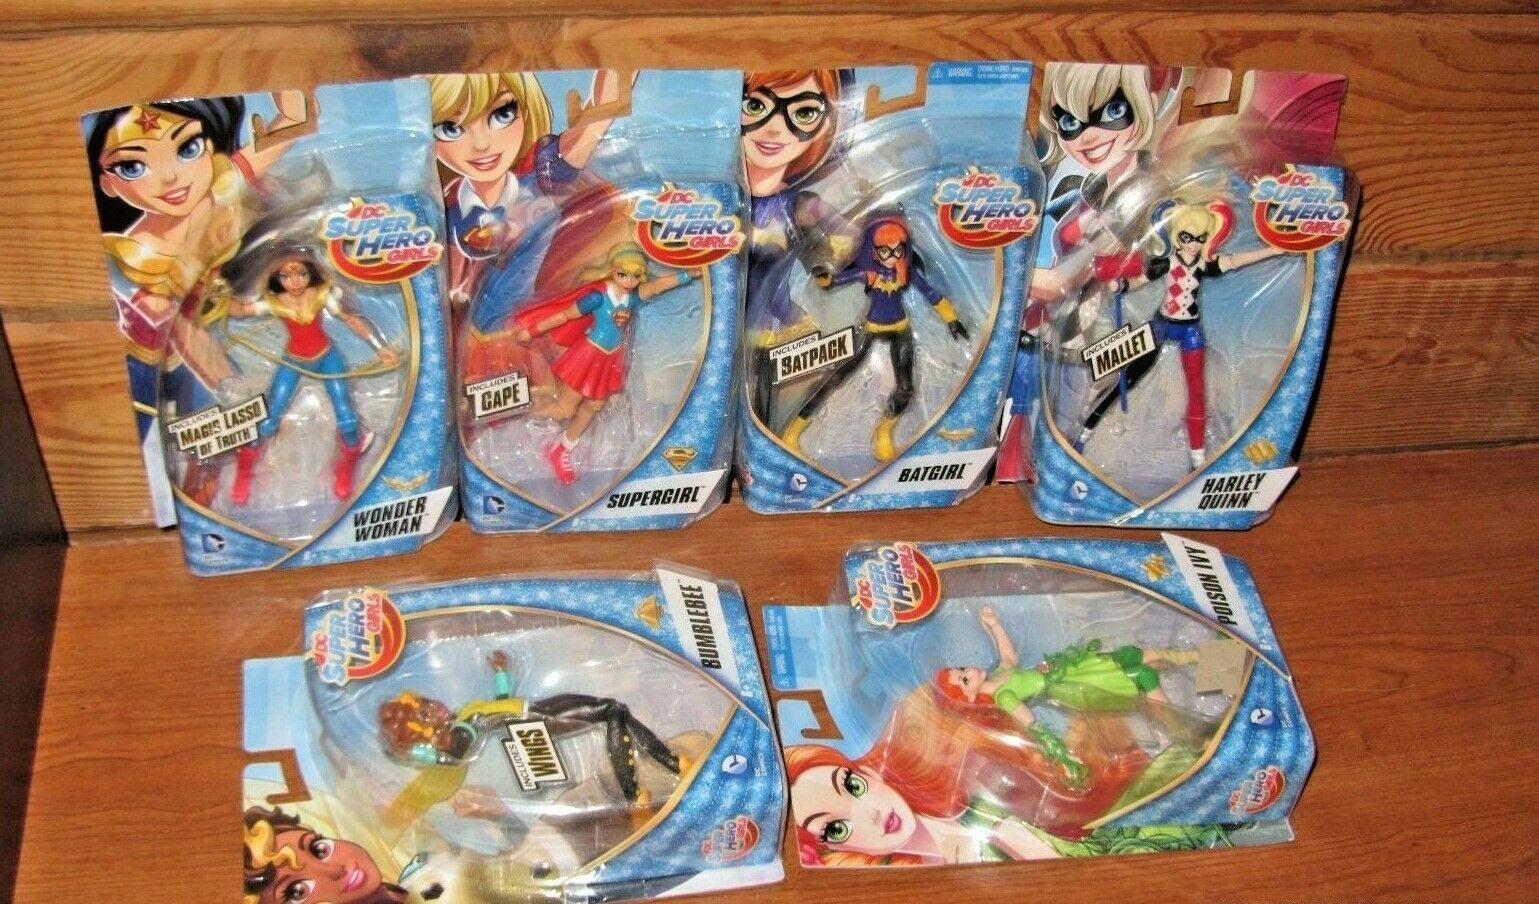 6X DC SUPER HERO GIRLS BATGIRL HARLEY IVY WONDER BEE SUPERGIRL-6  ACTION FIGURES